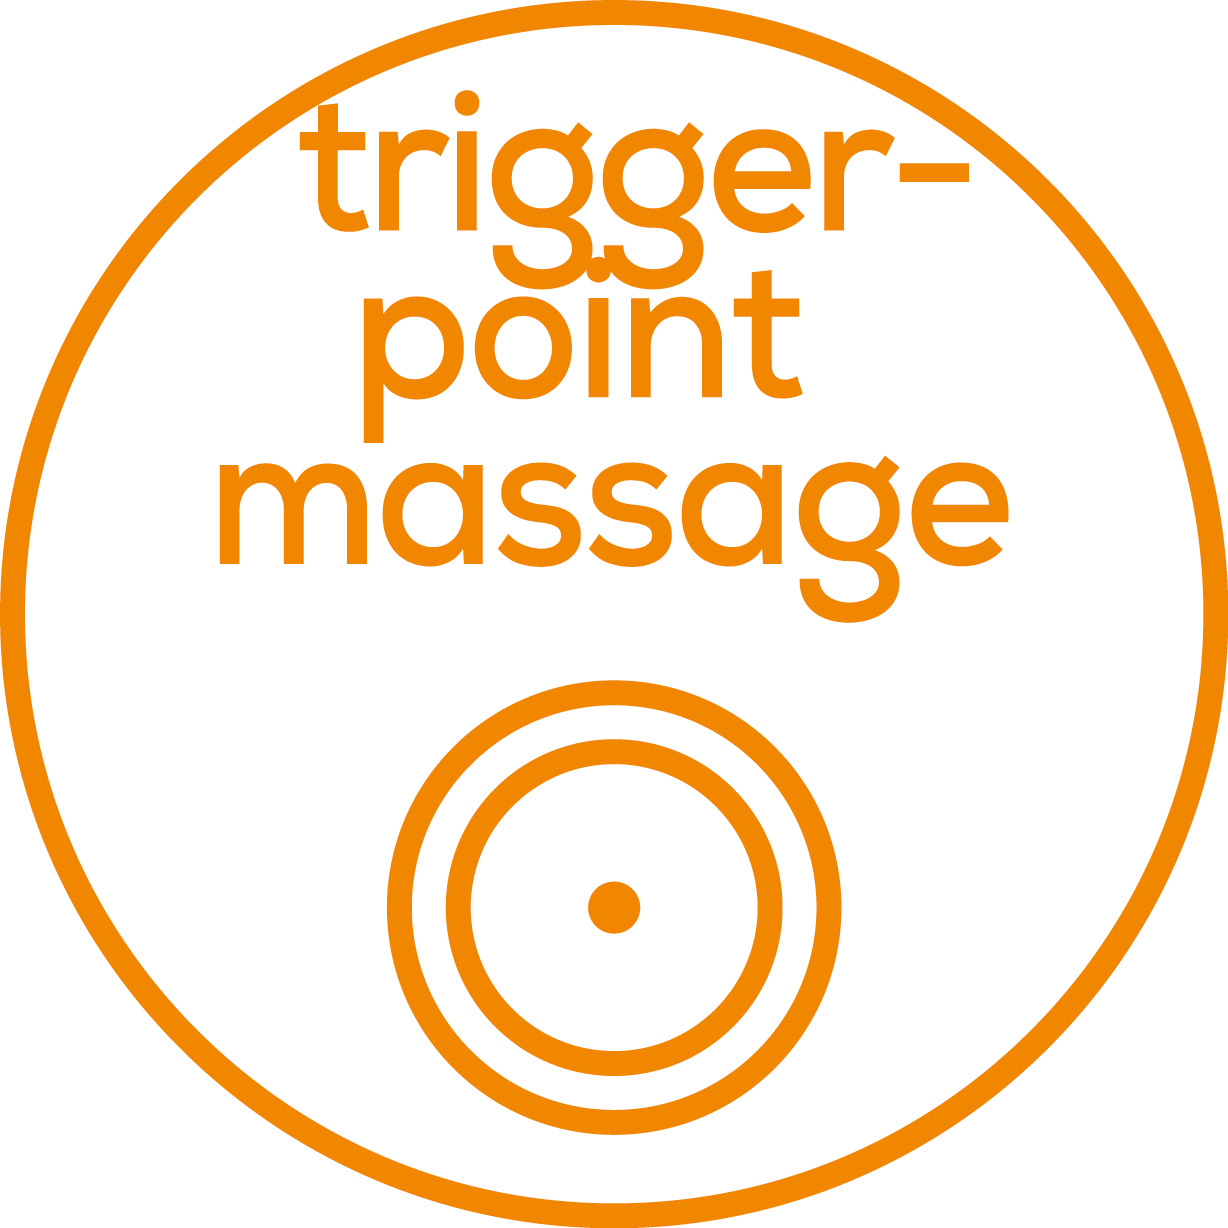 Trigger point massage Massage ball with vibration for targeted trigger point massage